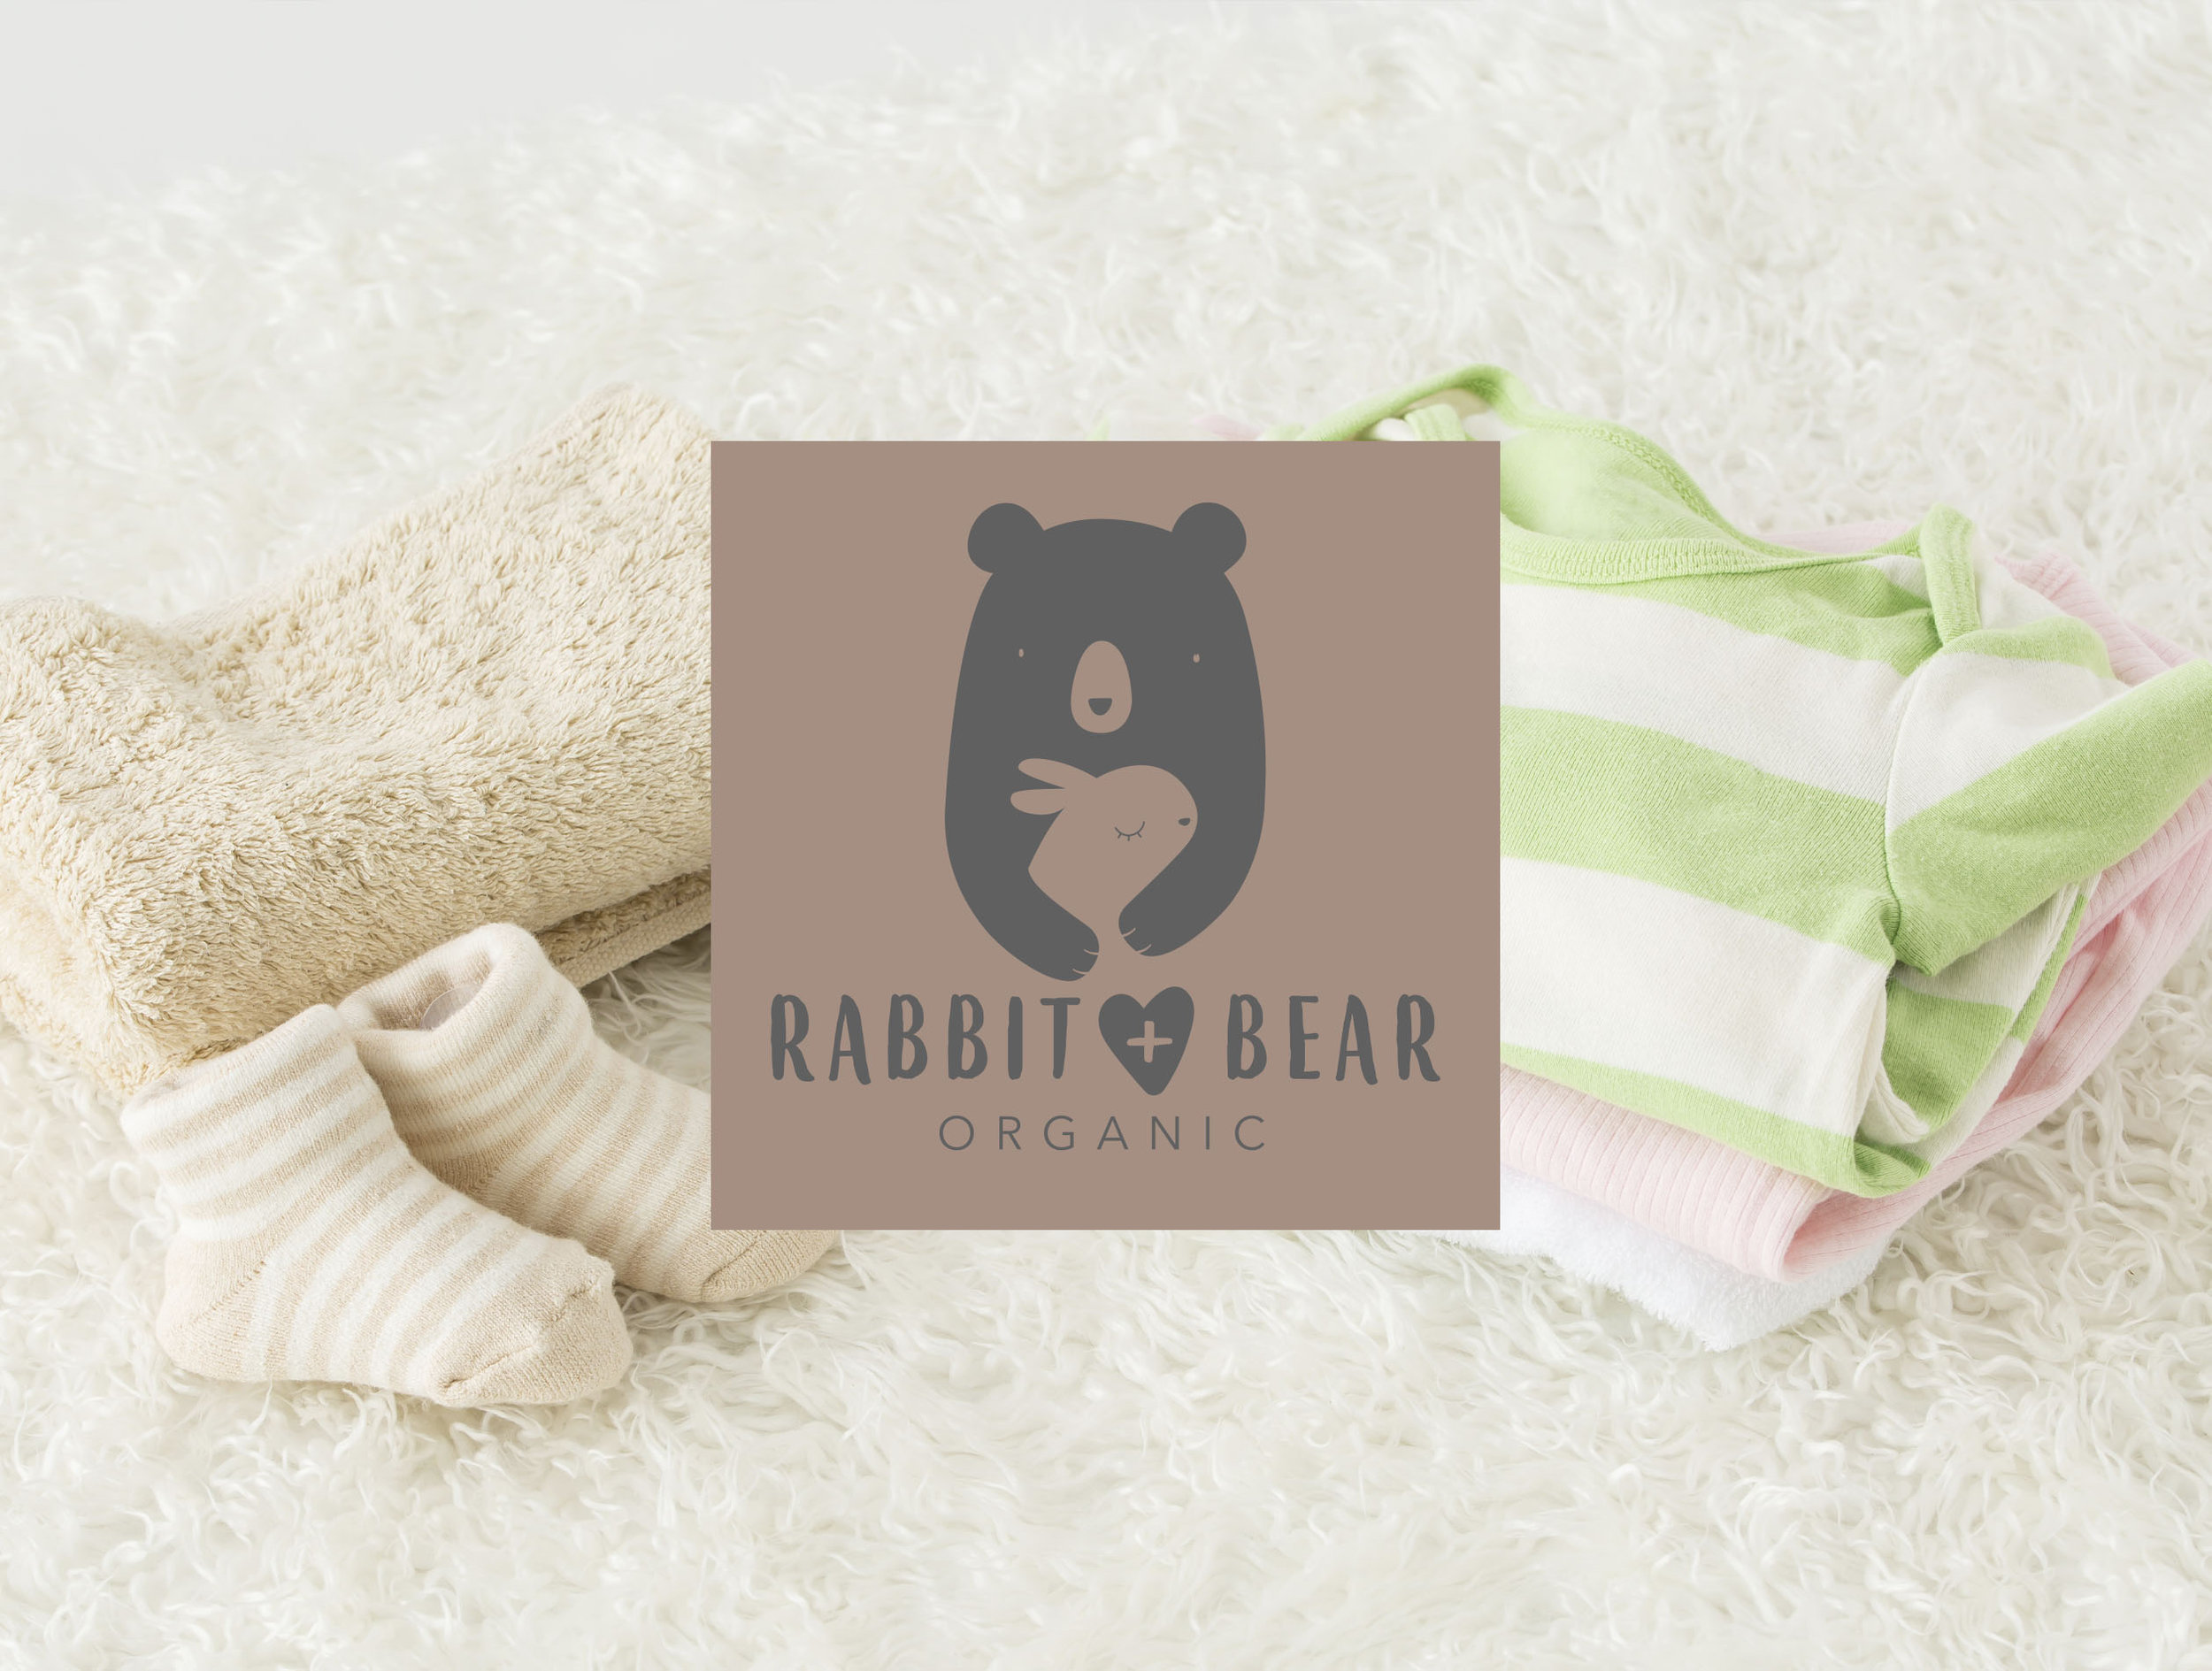 Rabbit+Bear clothing is made using 100% organic cotton and uses sustainable packaging. With   limited-edition prints and mix-and-match essentials this line maximizes the cuteness while minimizing its impact on Mother Earth.